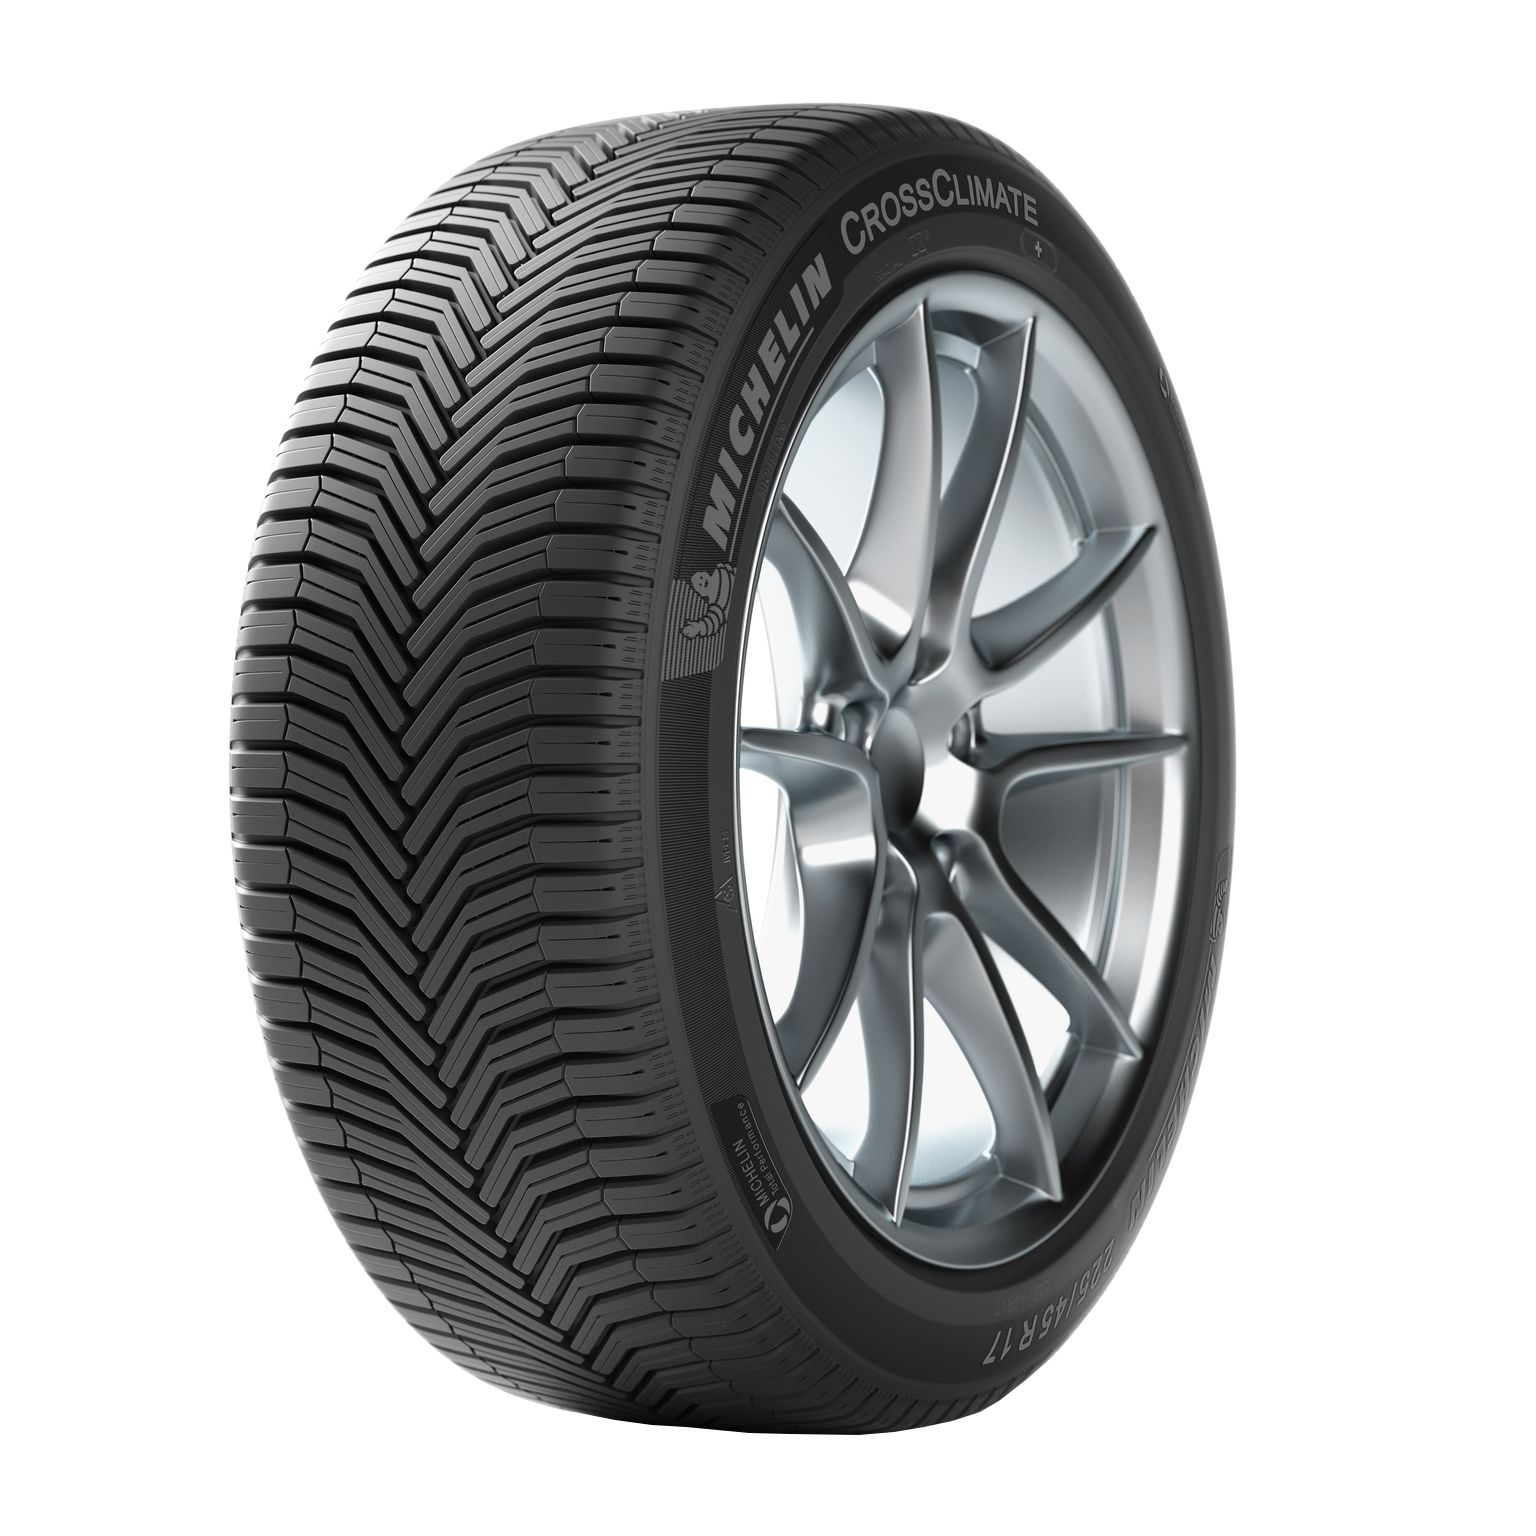 Anvelope Michelin Crossclimate + 255/40R19 100Y All Season